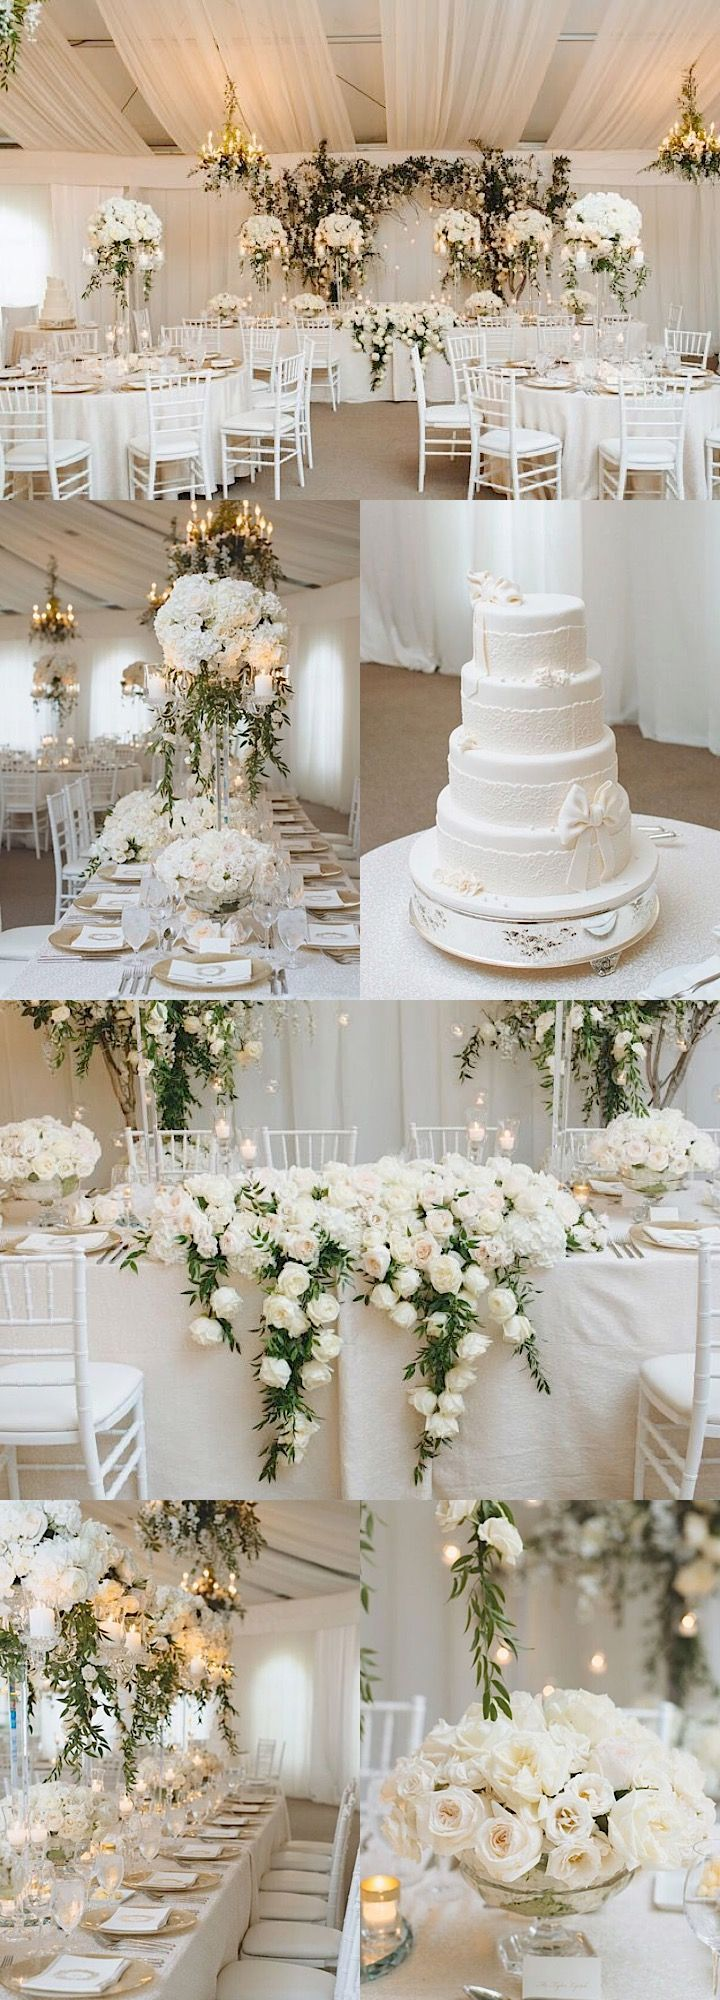 206 best images on pinterest weddings wedding ideas and elegant white wedding reception idea photo mango studios junglespirit